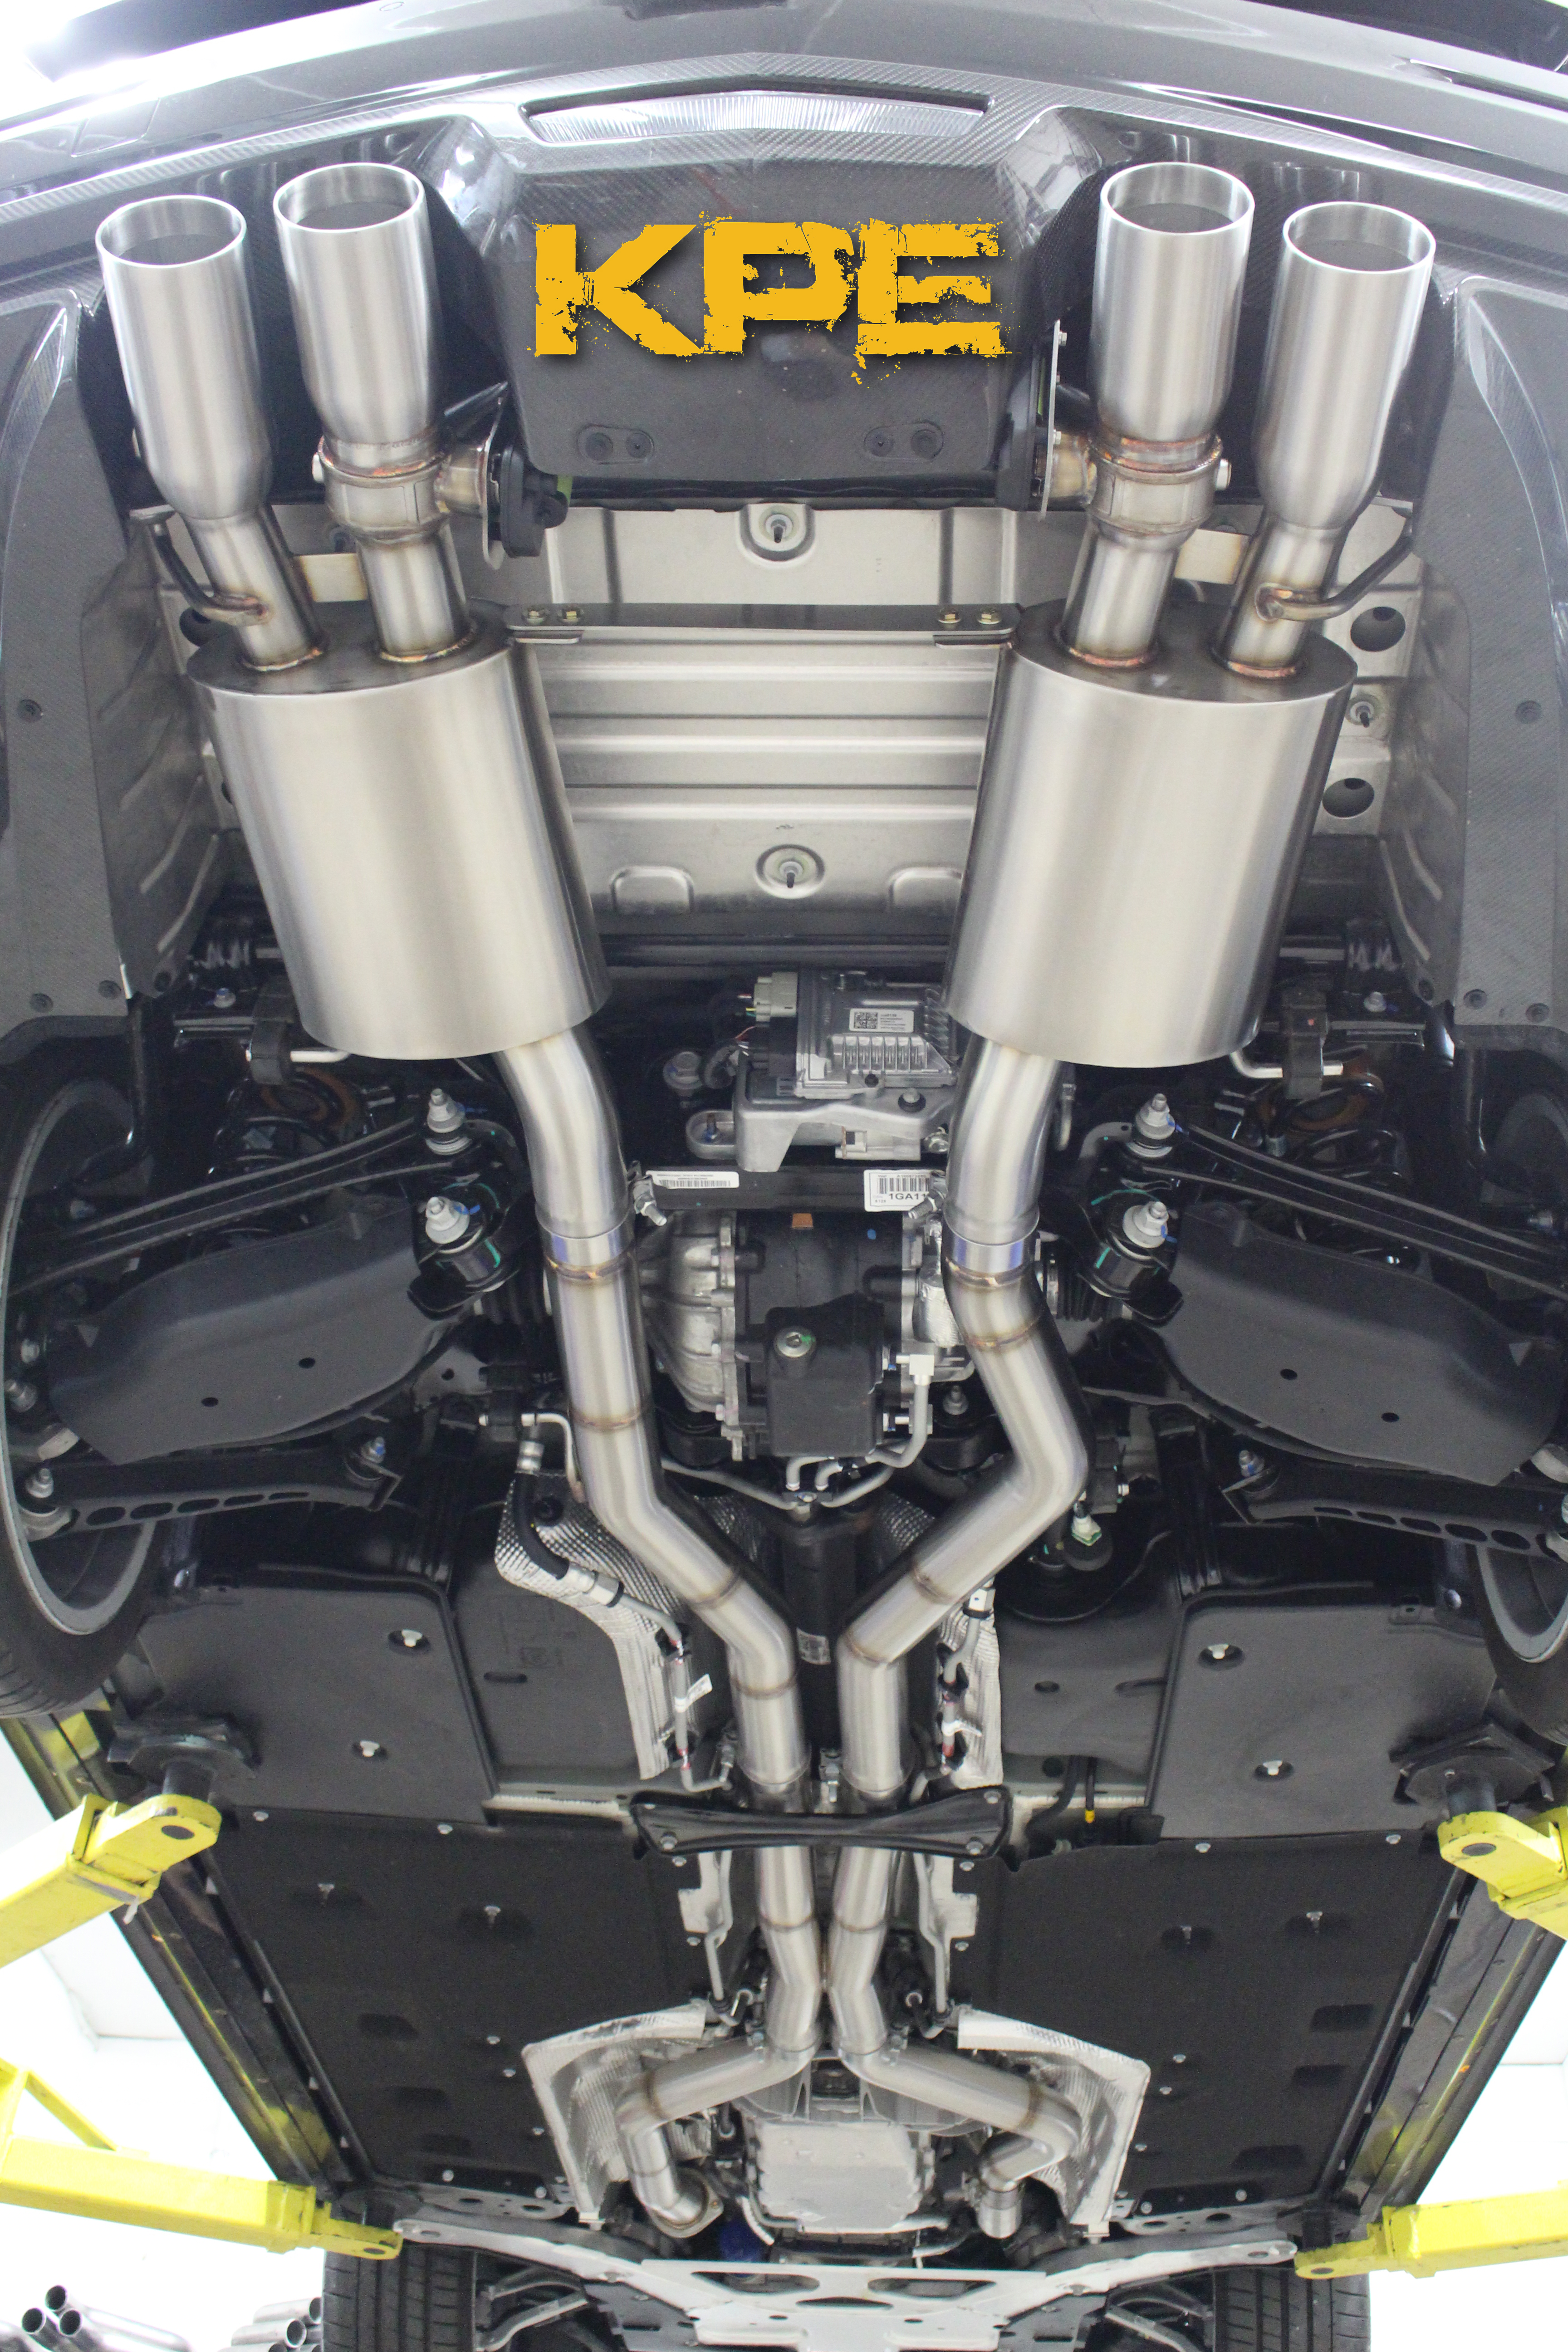 Cadillac ats v exhaust system 2014 17 kpe ats v mid section exhaust publicscrutiny Image collections